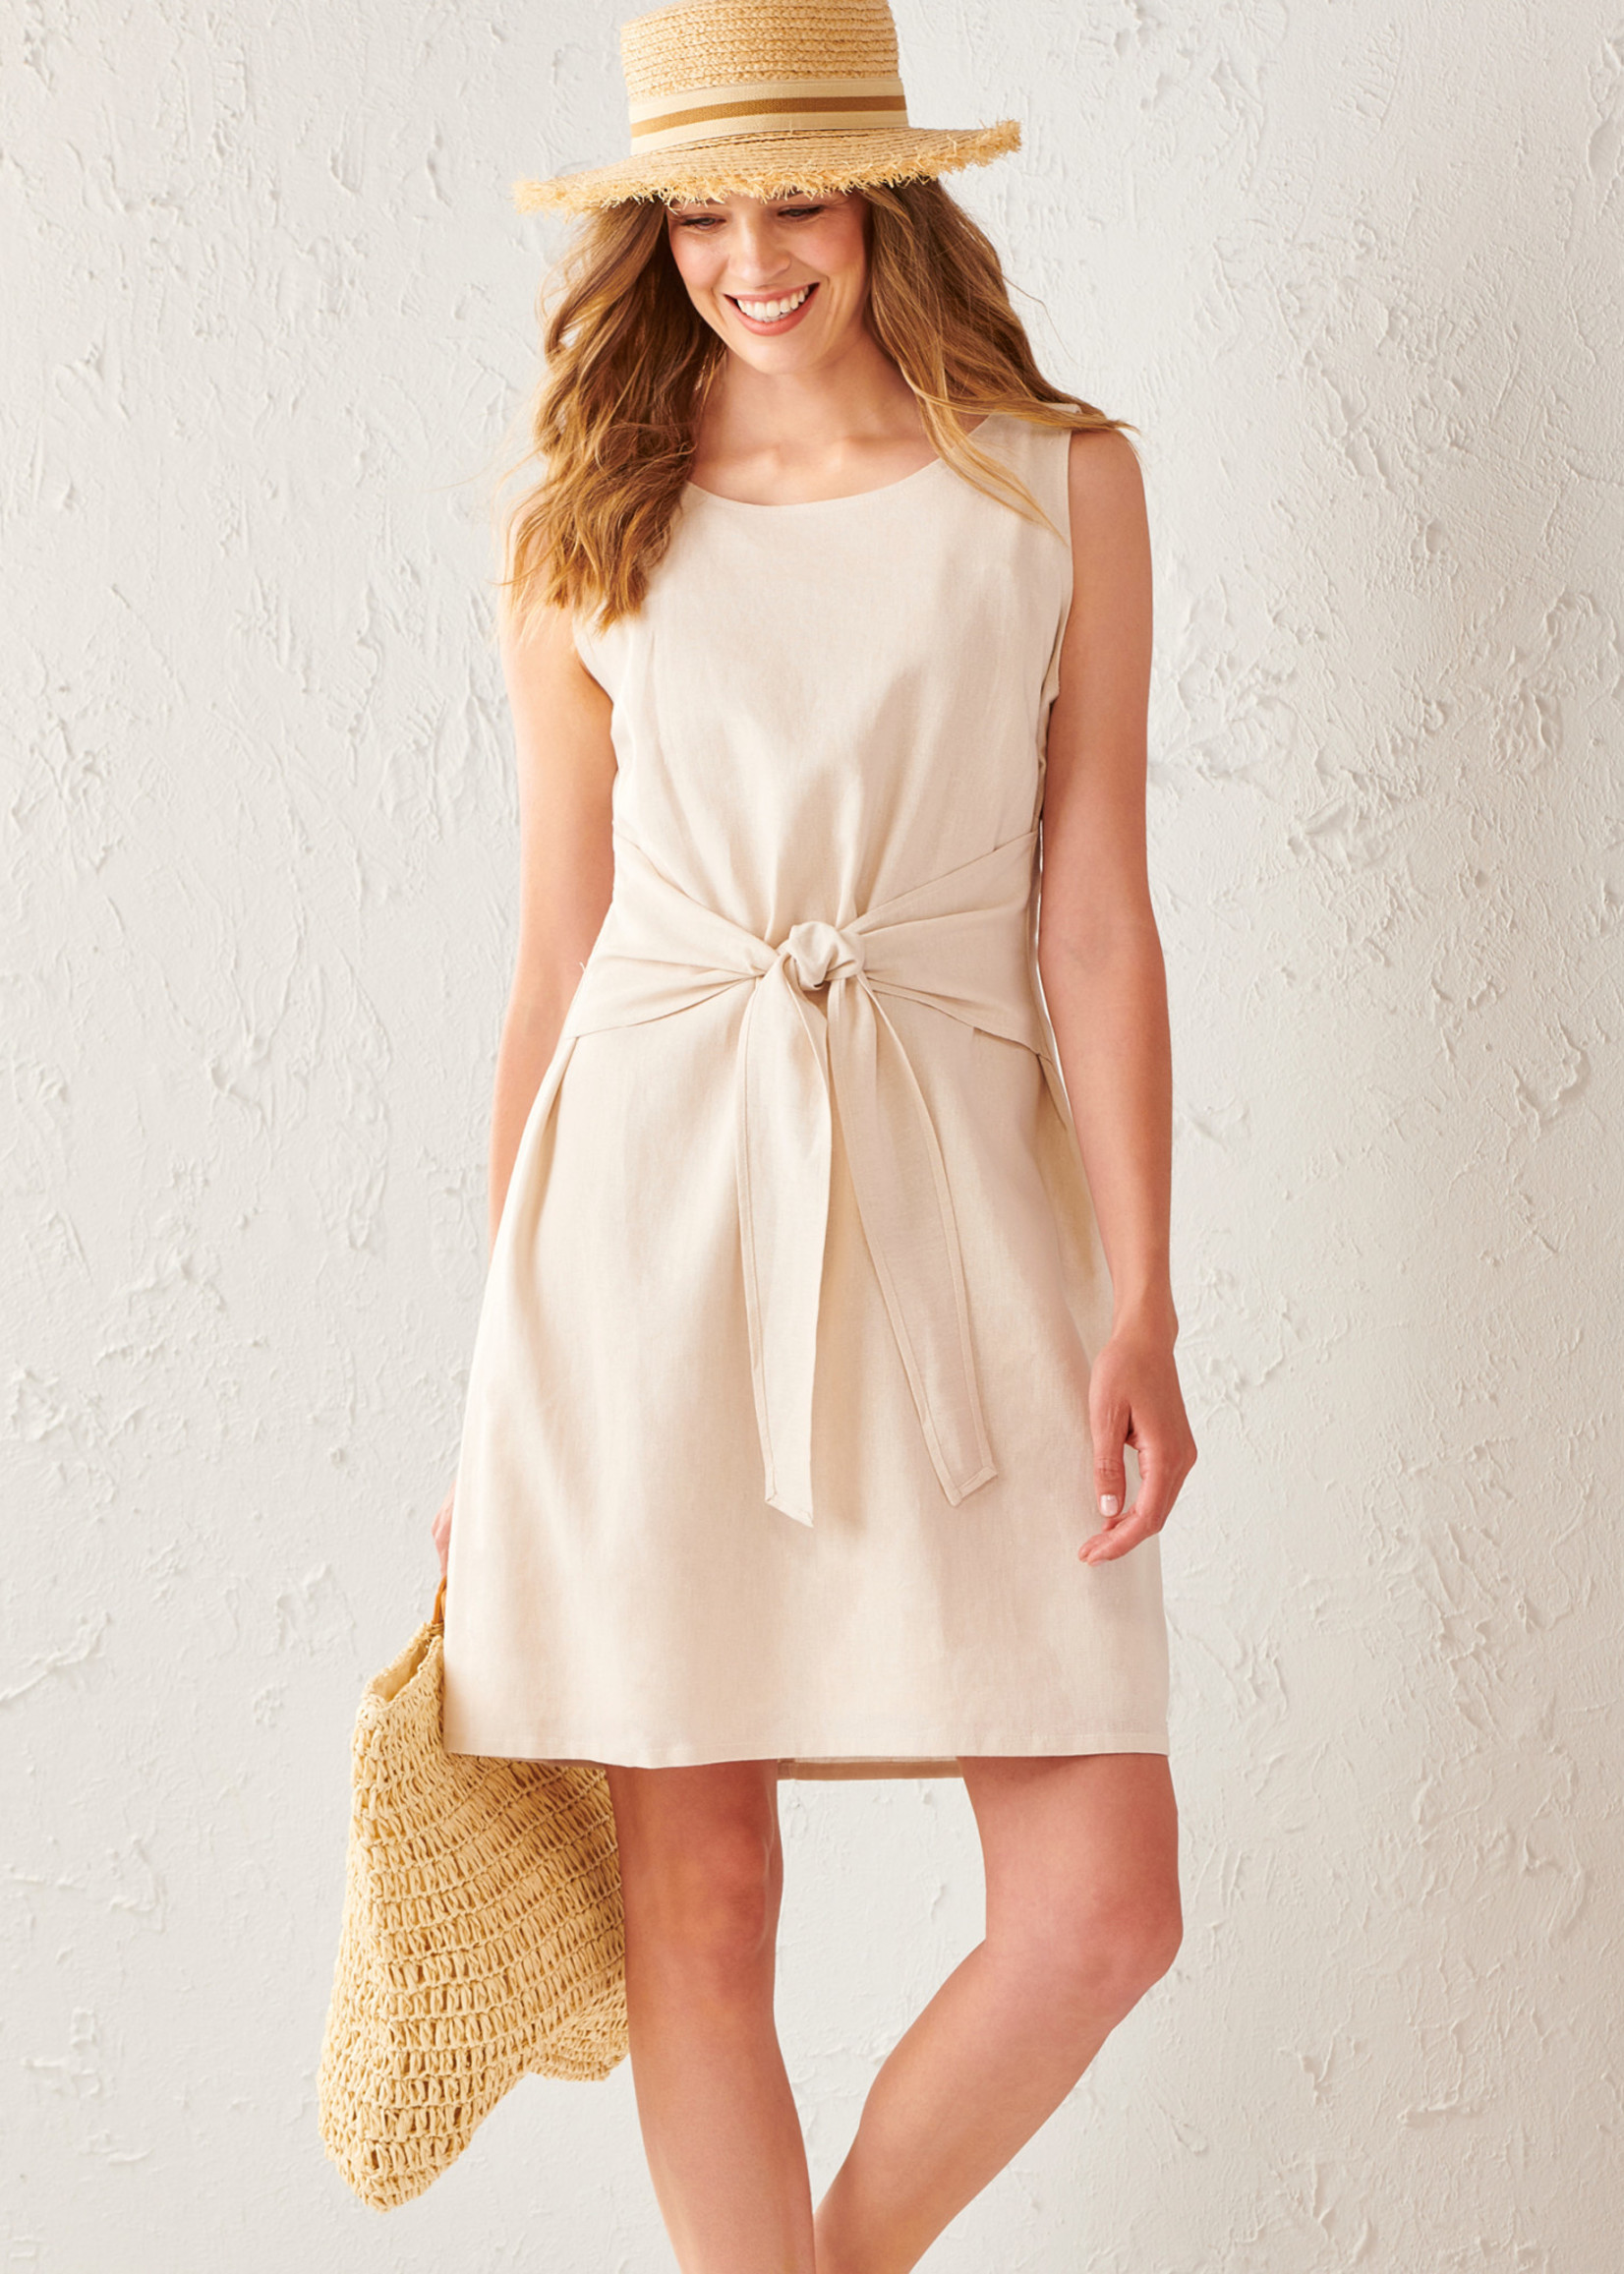 Charlie Paige CP - Woven Tie Front Dress